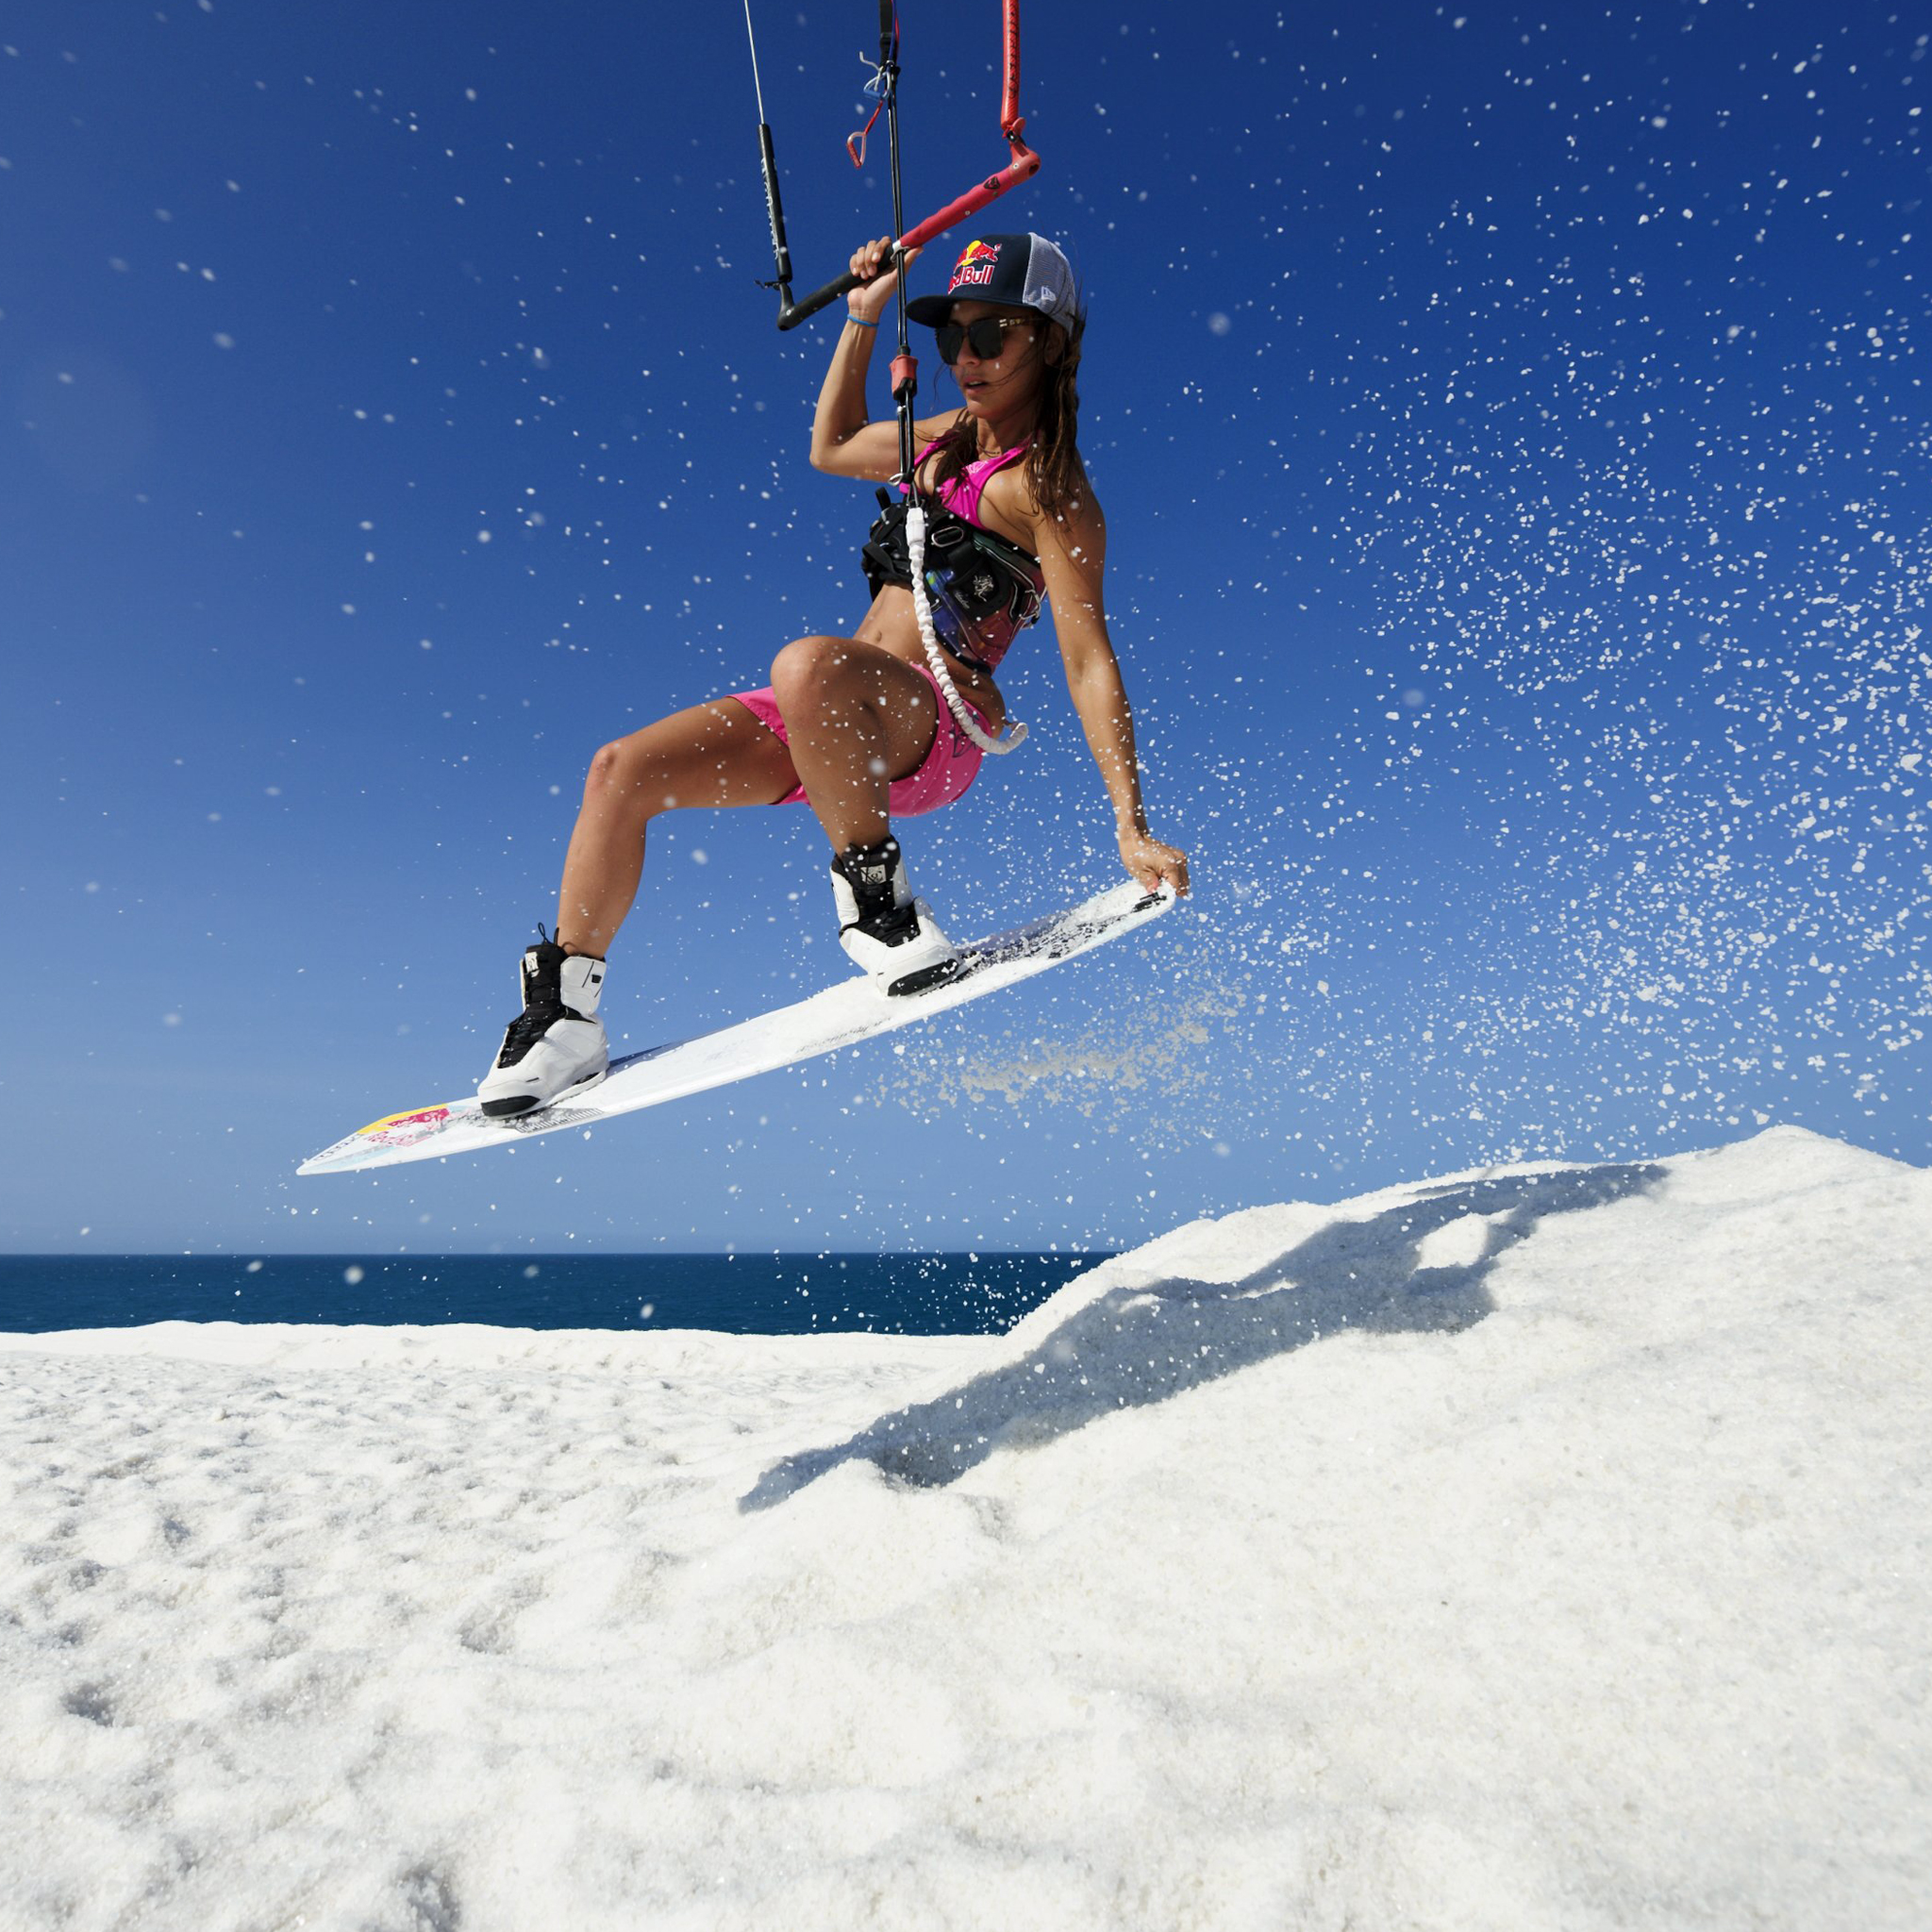 kitesurf wallpaper image - Bruna Kajiya jumping from salt mountain - in resolution: iPad 2 & 3 2048 X 2048